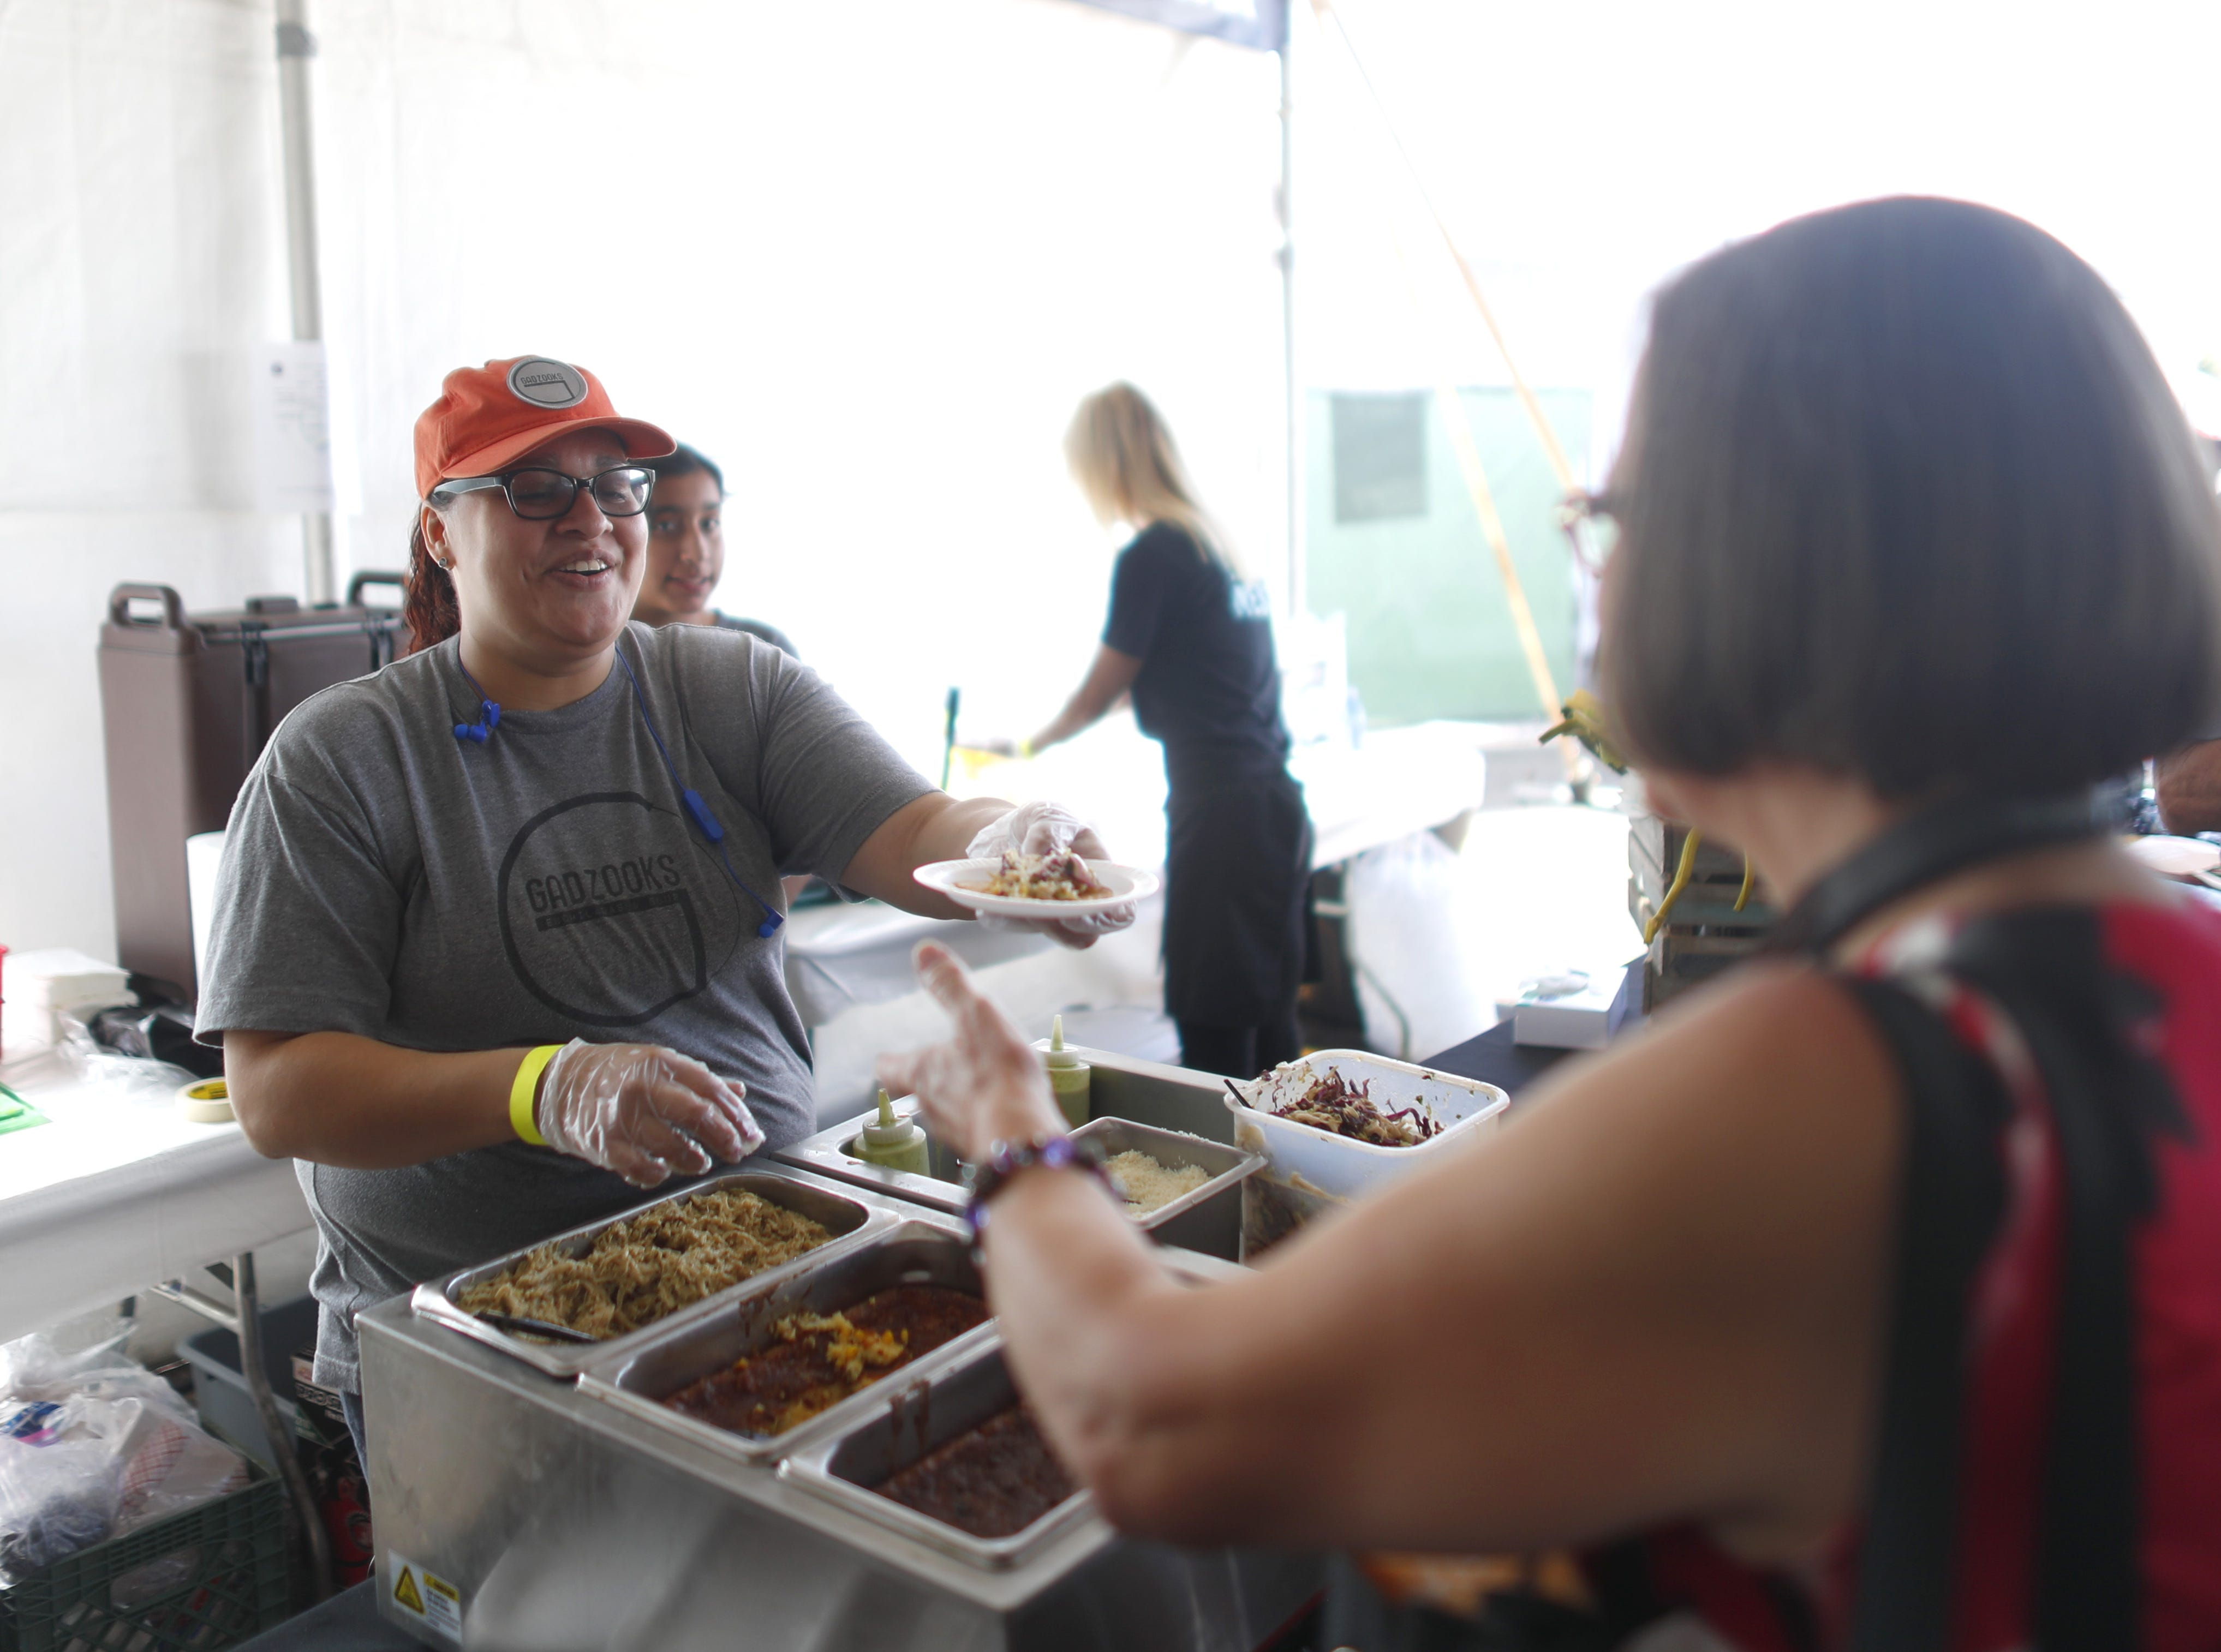 Food from Gadzooks is handed out during the azcentral Wine & Food Experience at WestWorld of Scottsdale, Ariz. on Nov. 4, 2018.